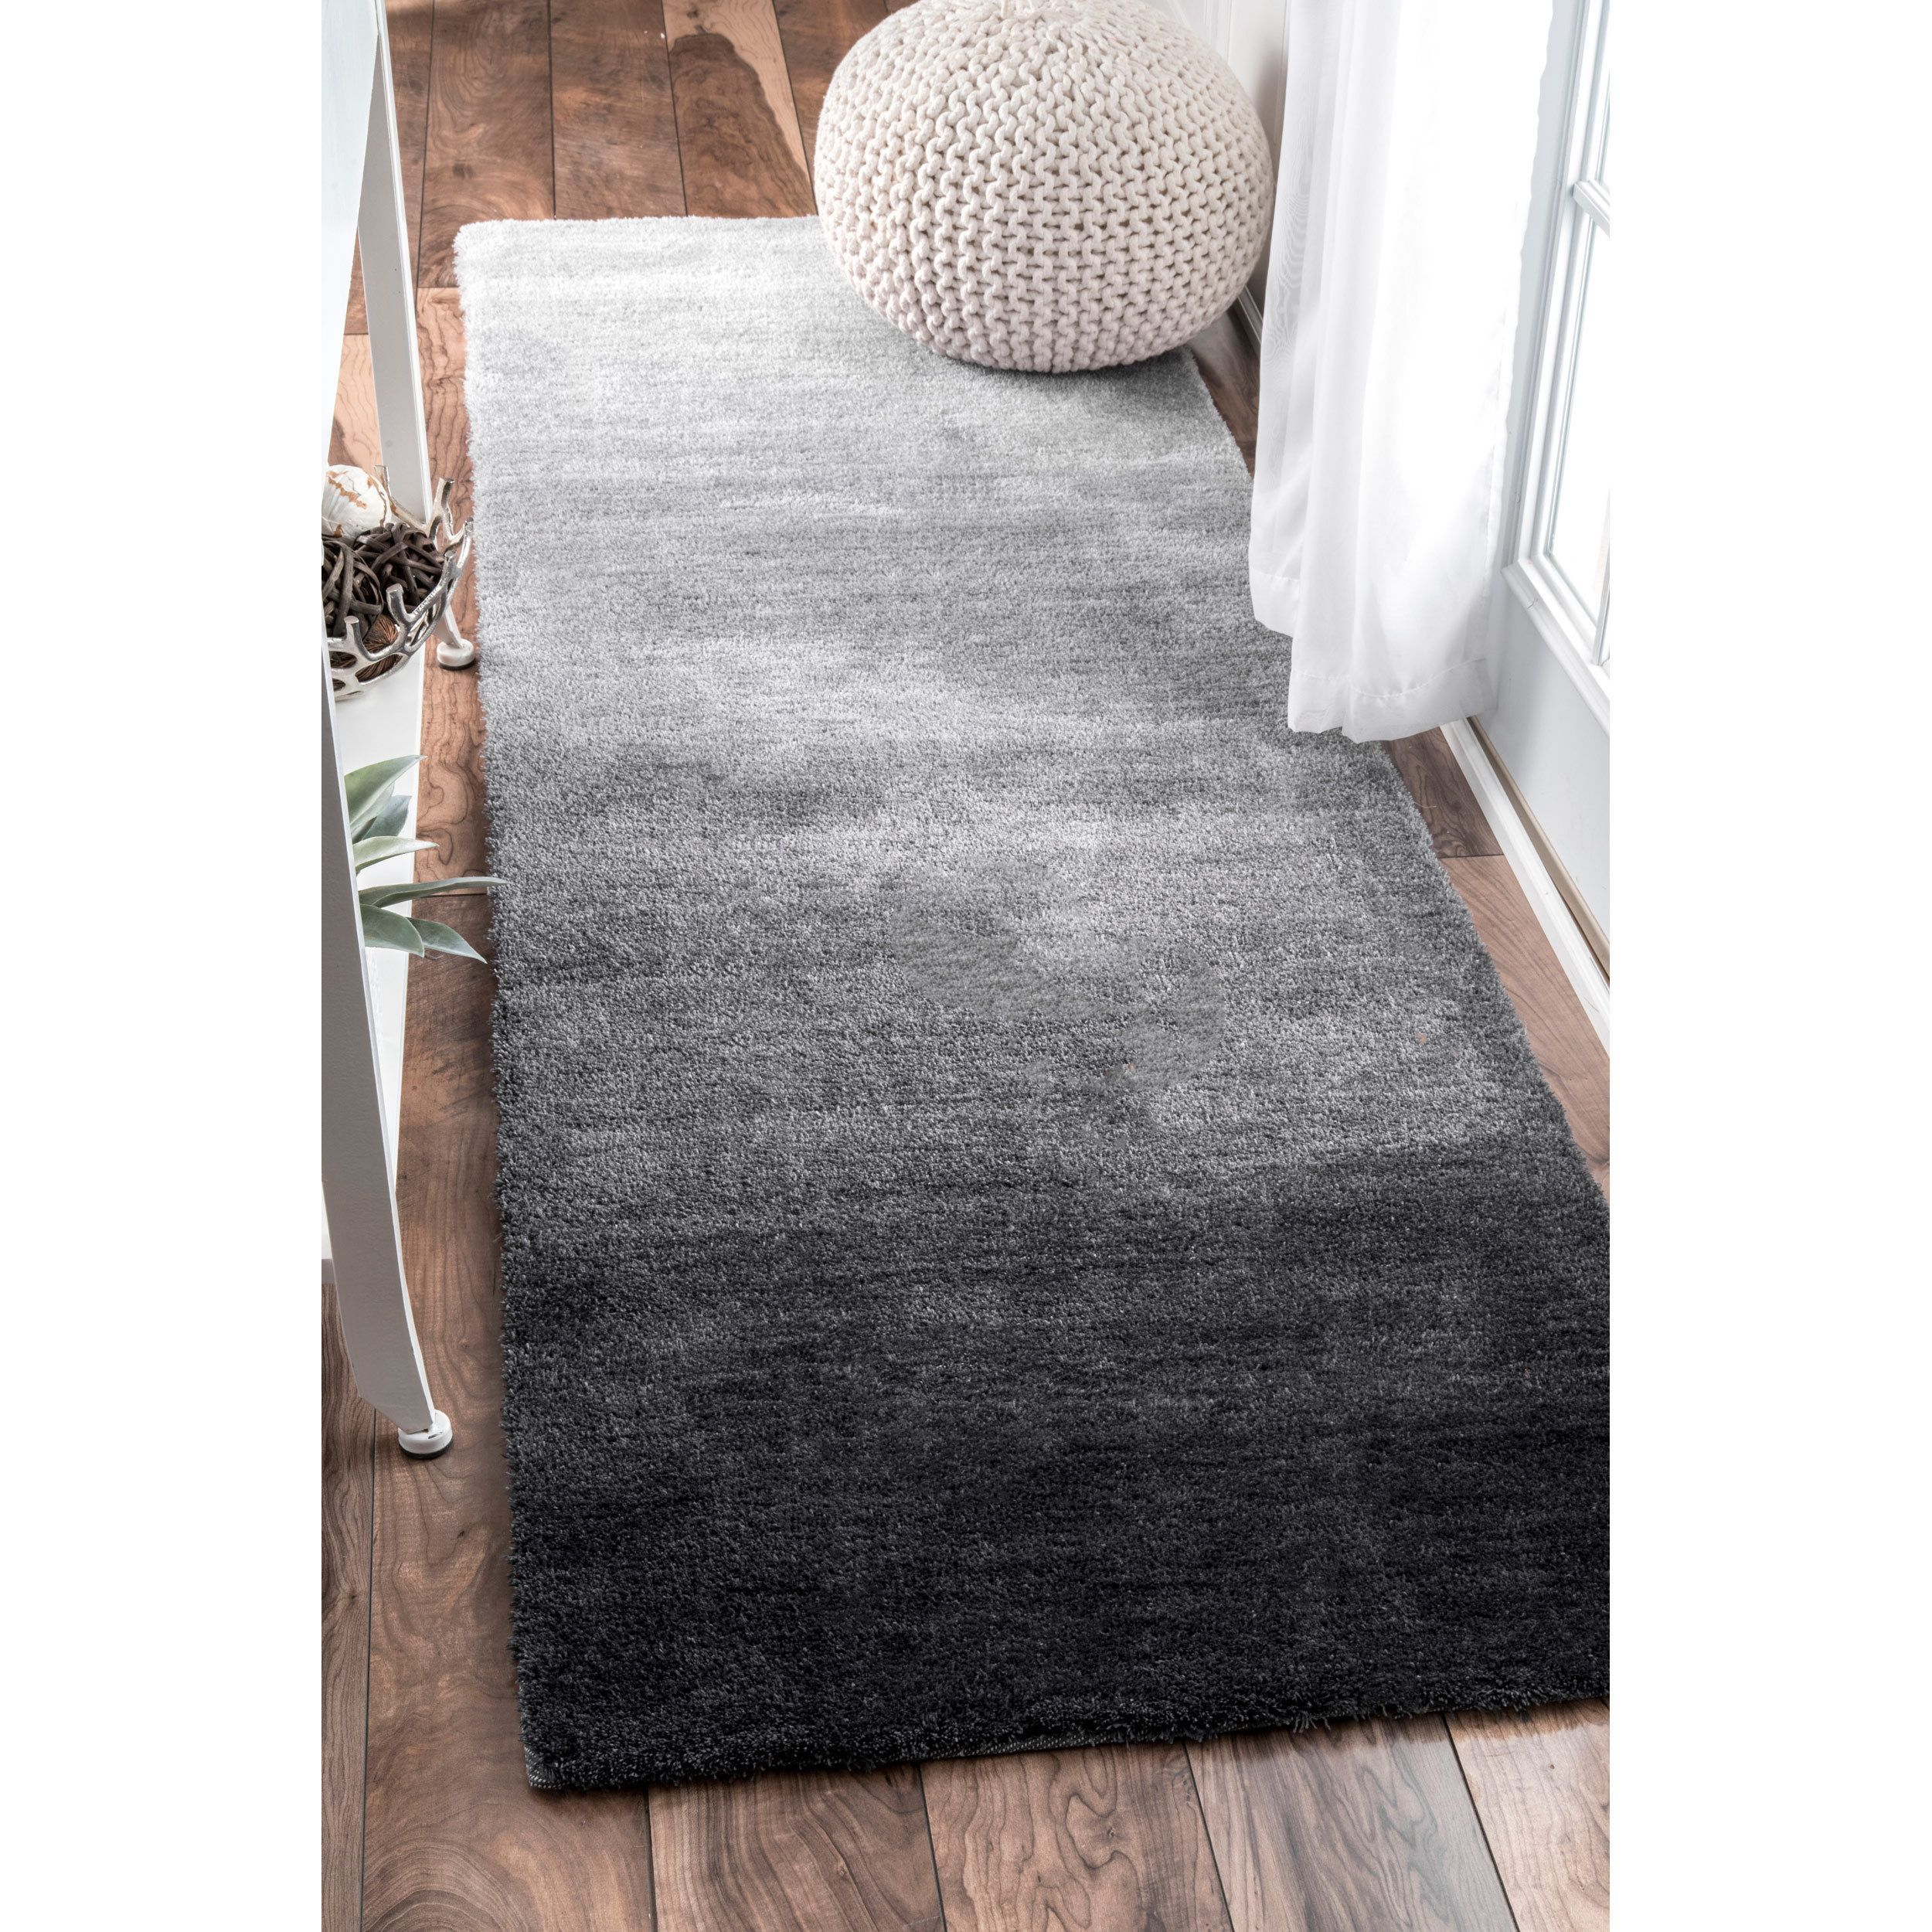 Nuloom Handmade Soft And Plush Ombre Grey Runner Rug 2 6 X 8 Size Synthetic Solid